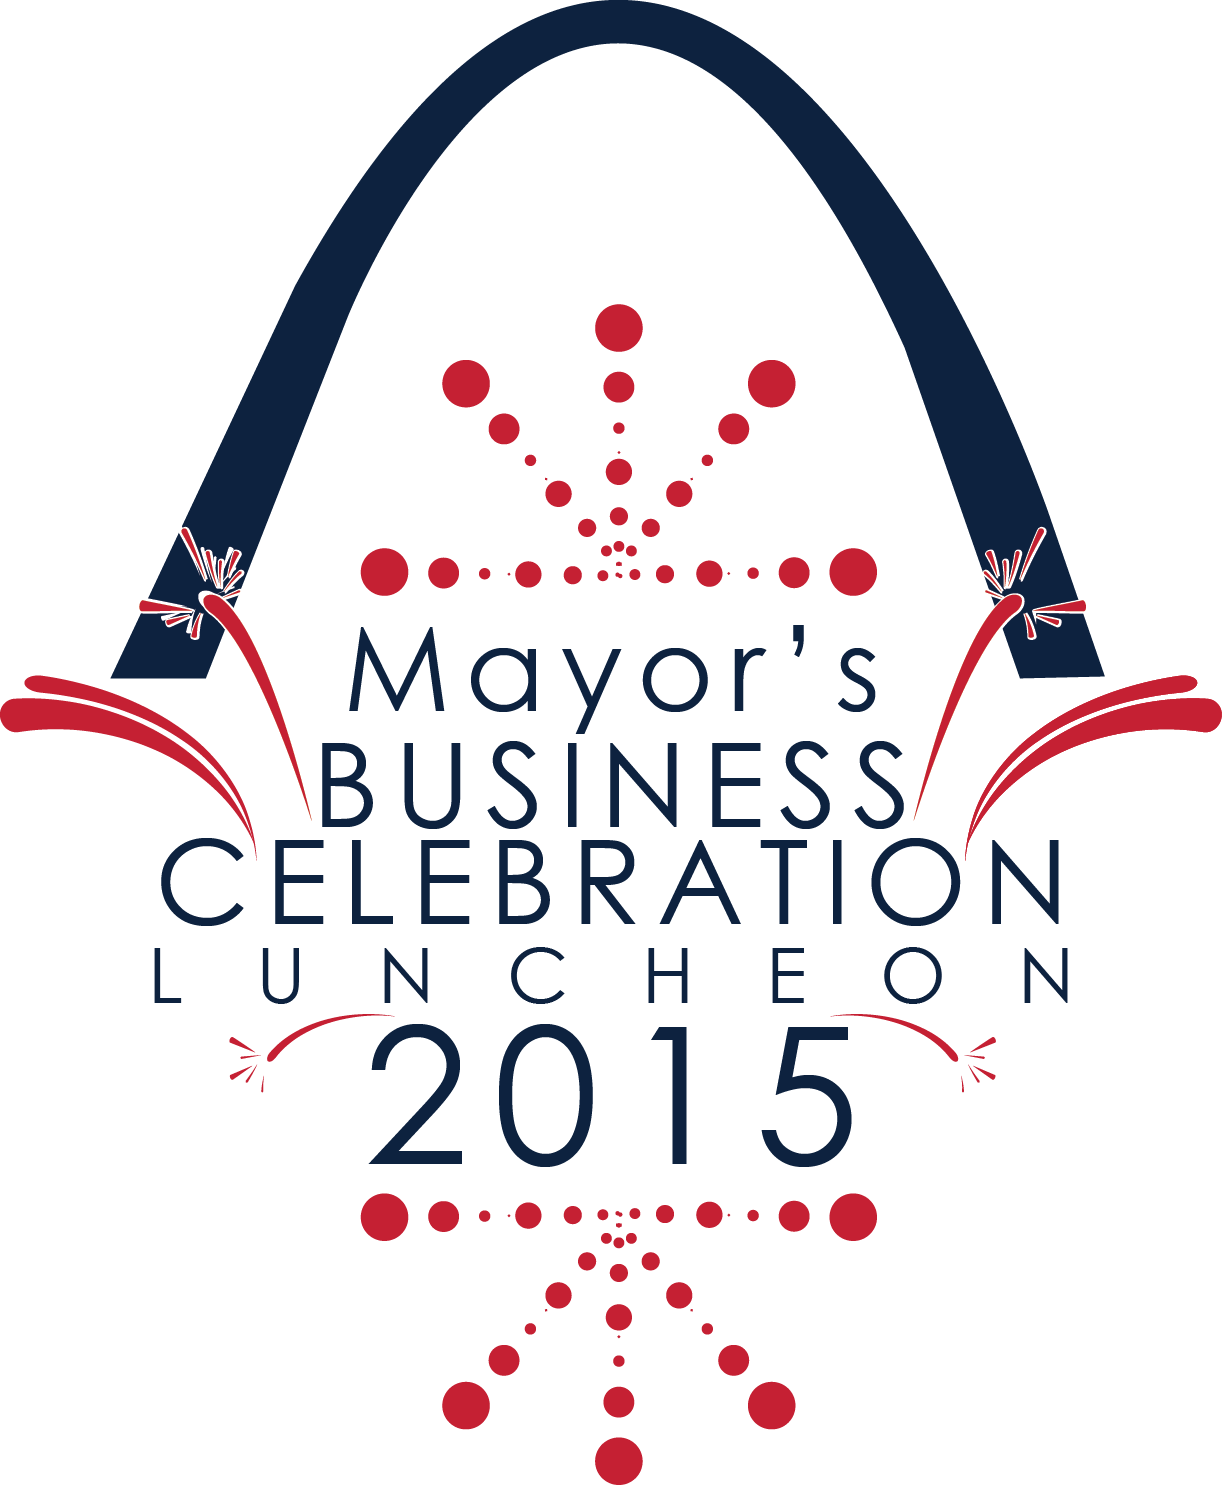 Mayor's Business Luncheon logo for 2015